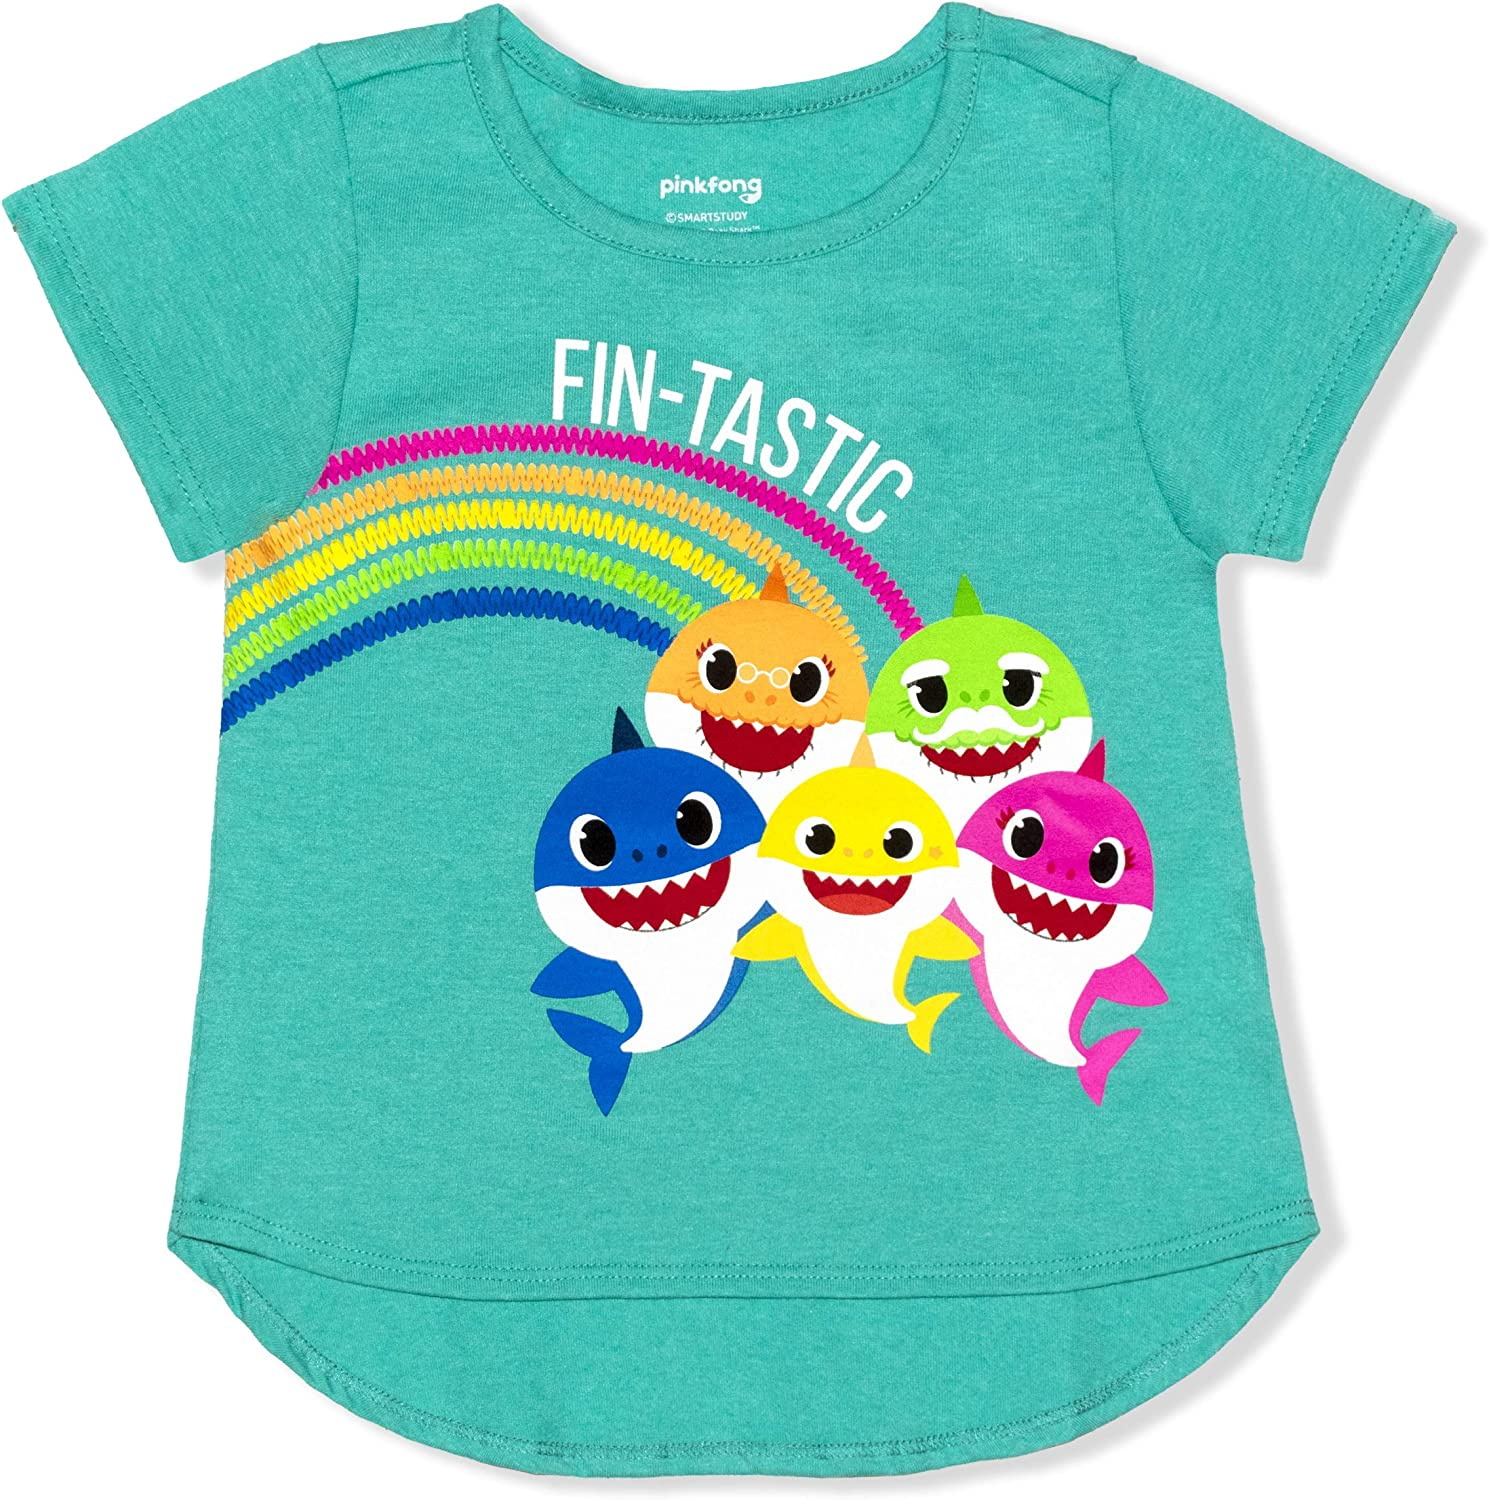 Nickelodeon Baby Shark Shirt for Girls, Short Sleeves Hi-Low Tee for Toddlers